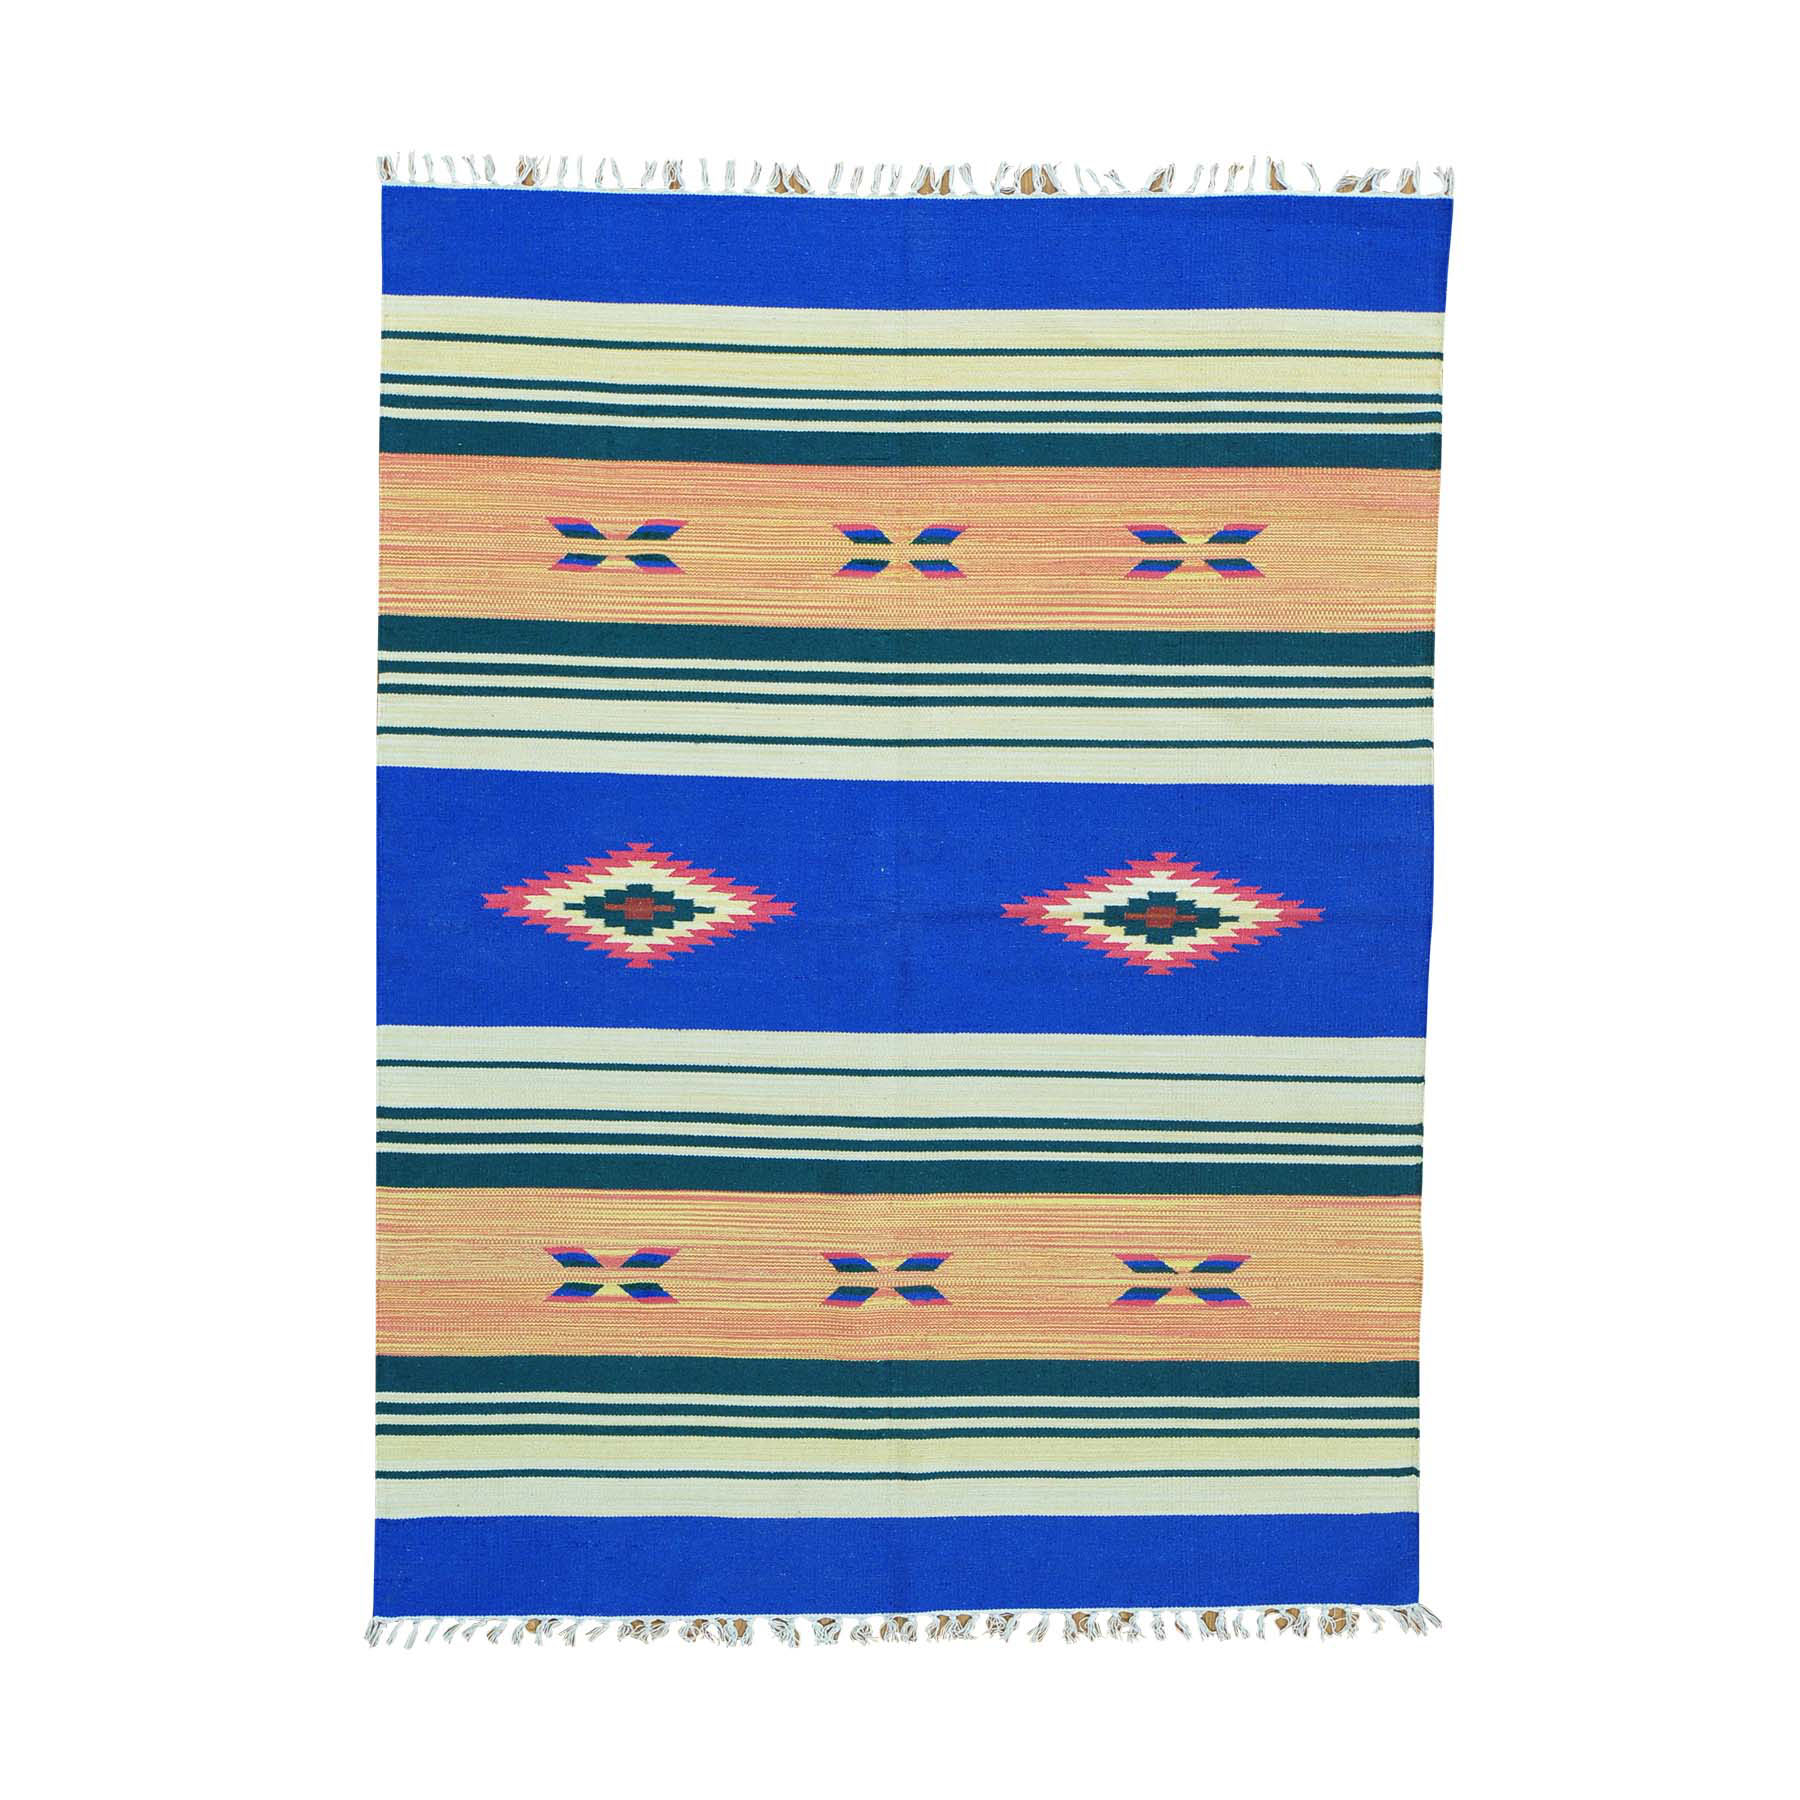 5-1 x7- Striped Kilim Flat Weave Hand Woven Southwest Design Rug